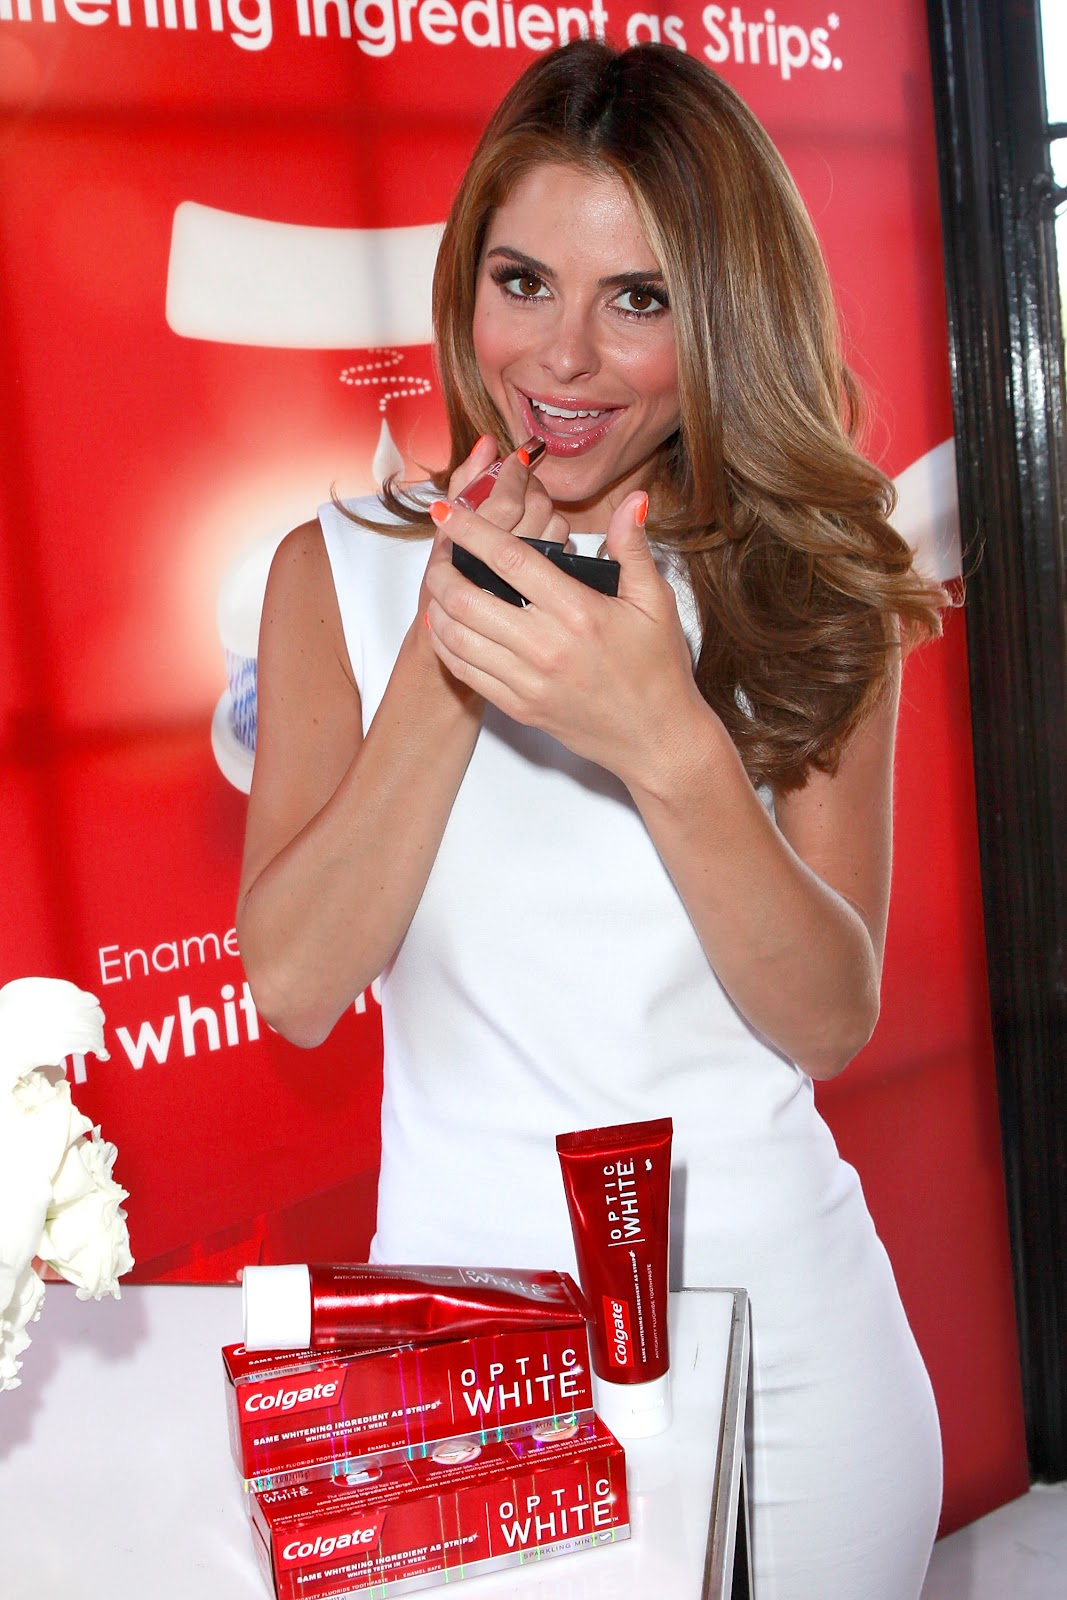 http://4.bp.blogspot.com/-C8I_ovqS3M8/T-OH4gMV_8I/AAAAAAAACGA/wI5YpM0XCqY/s1600/Maria+Menounos+promotes+Colgate+Optic+White+Beauty+Bar,+Nine+Zero+One+Salon+in+LA+02.jpg